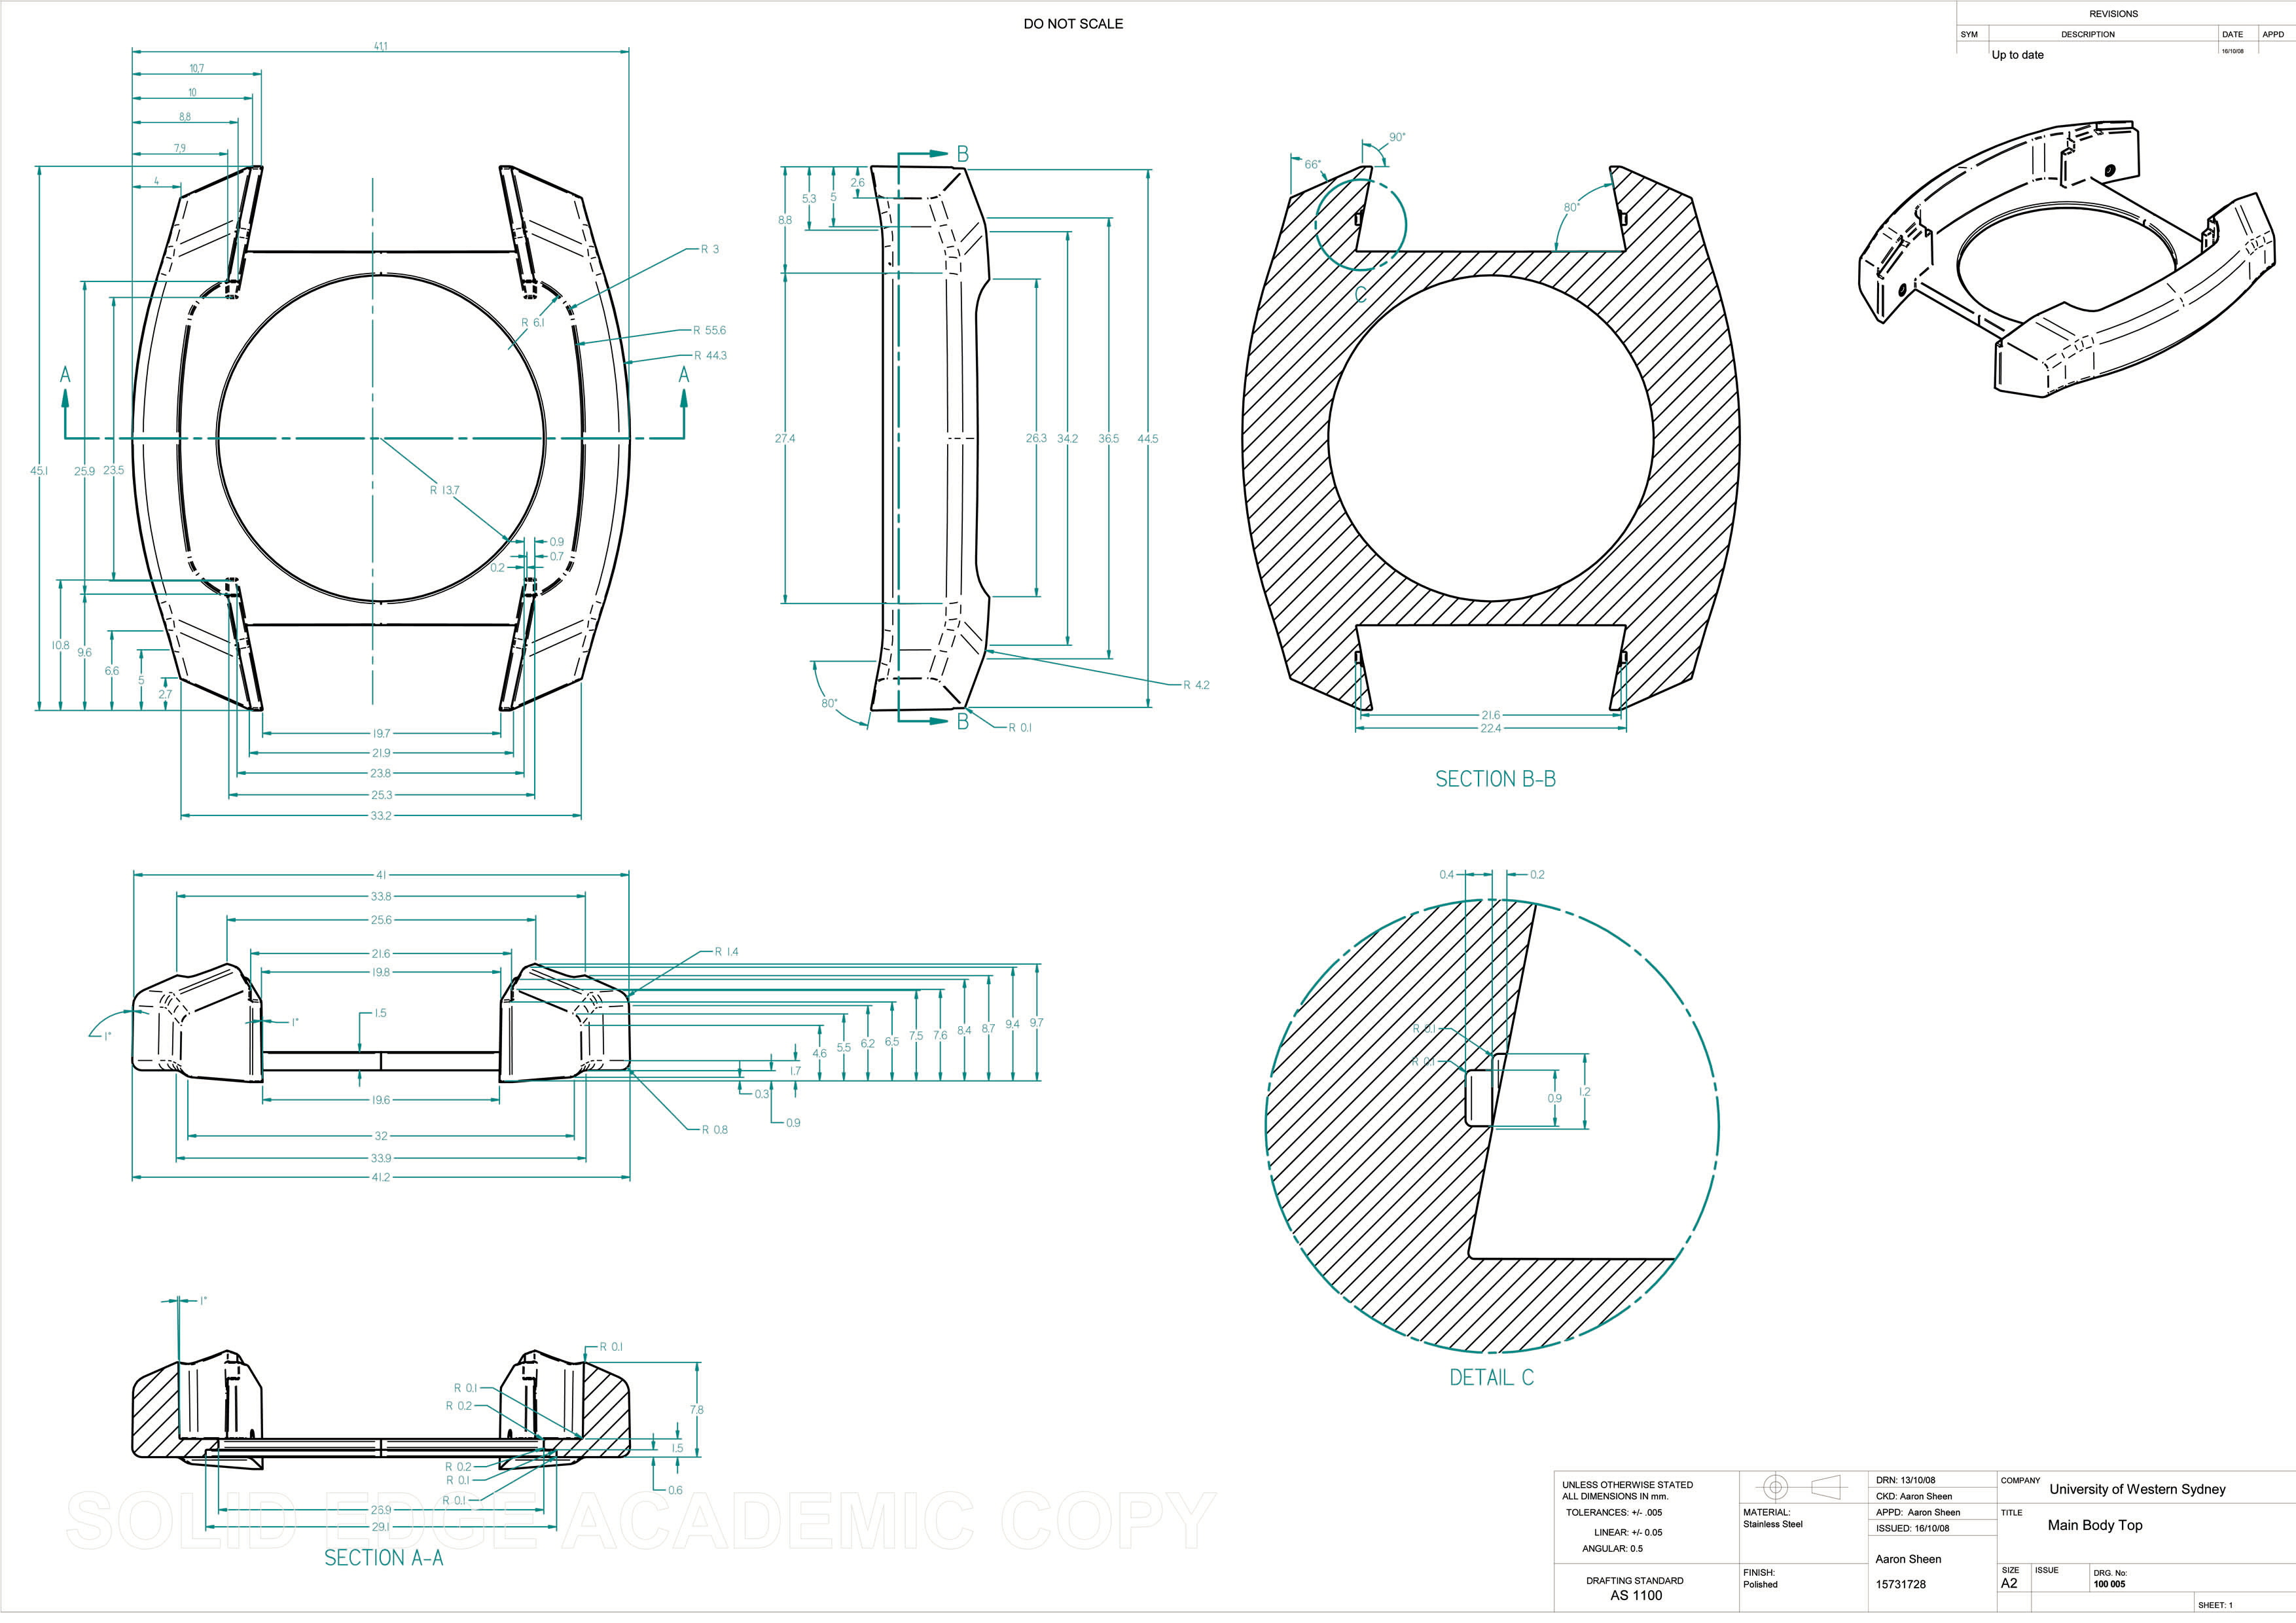 engineering drawings examples pictures to pin on pinterest